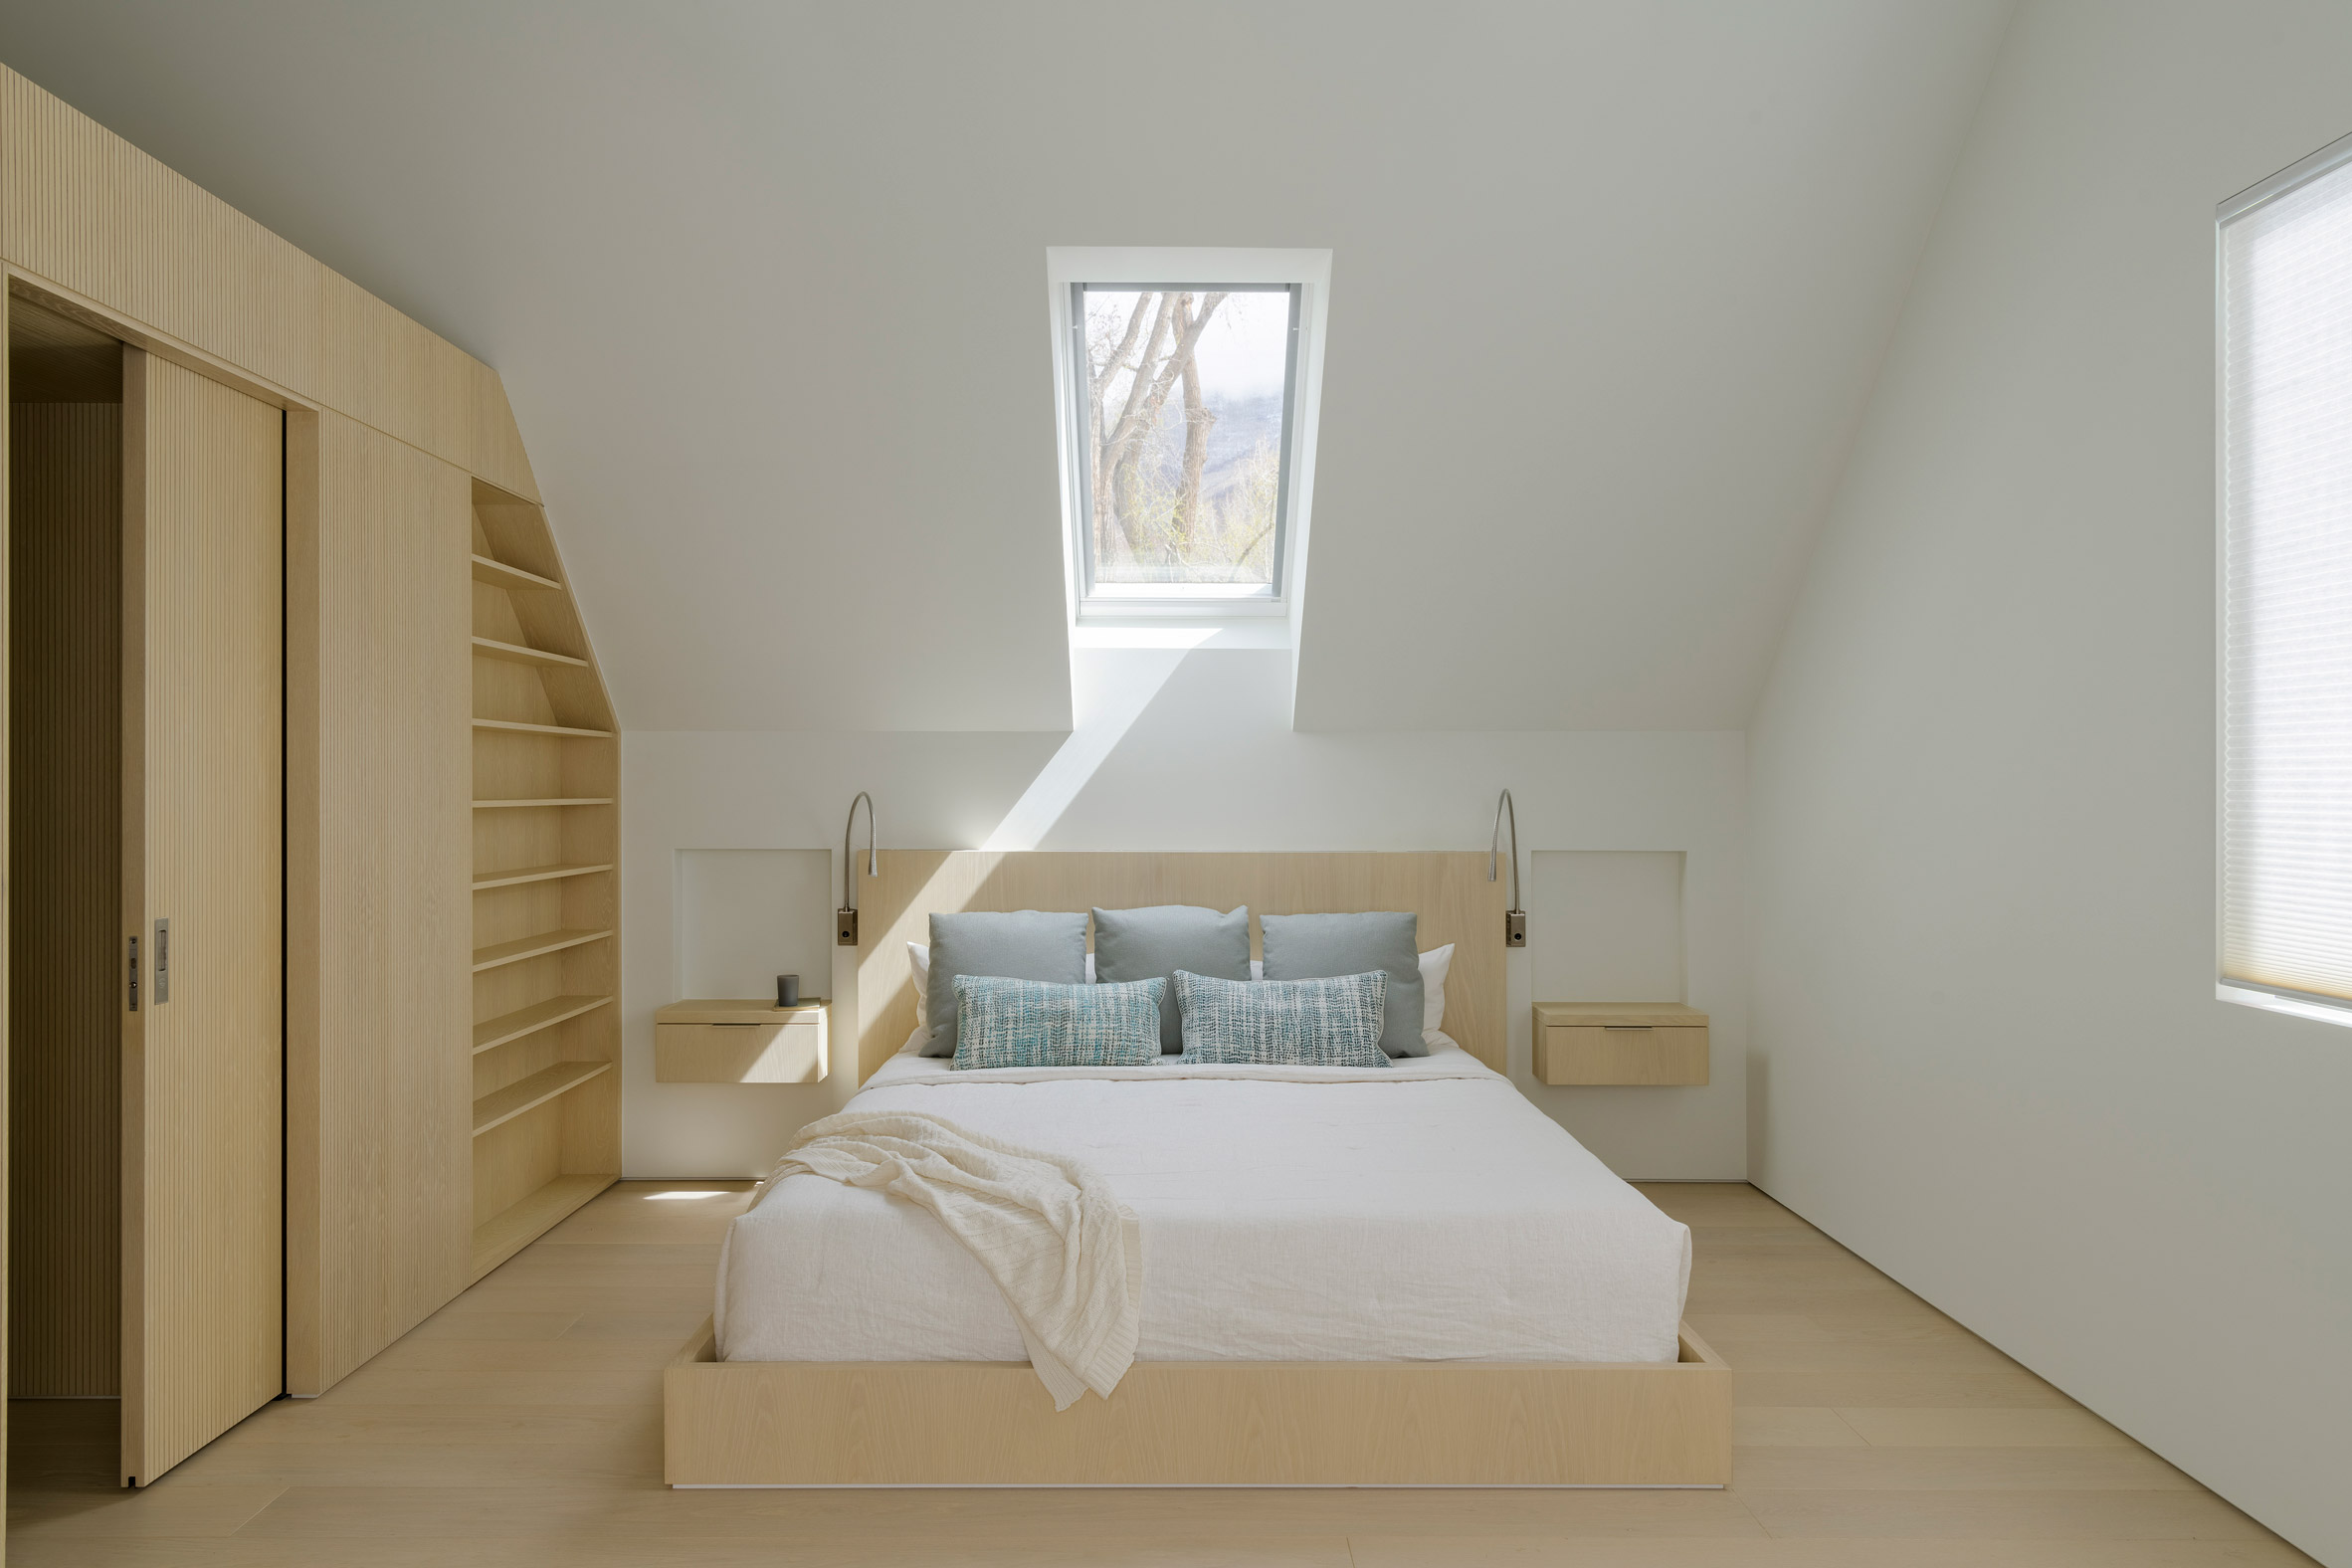 Bedroom o Exterior and perforated metal facade Music Box by CCY Architects